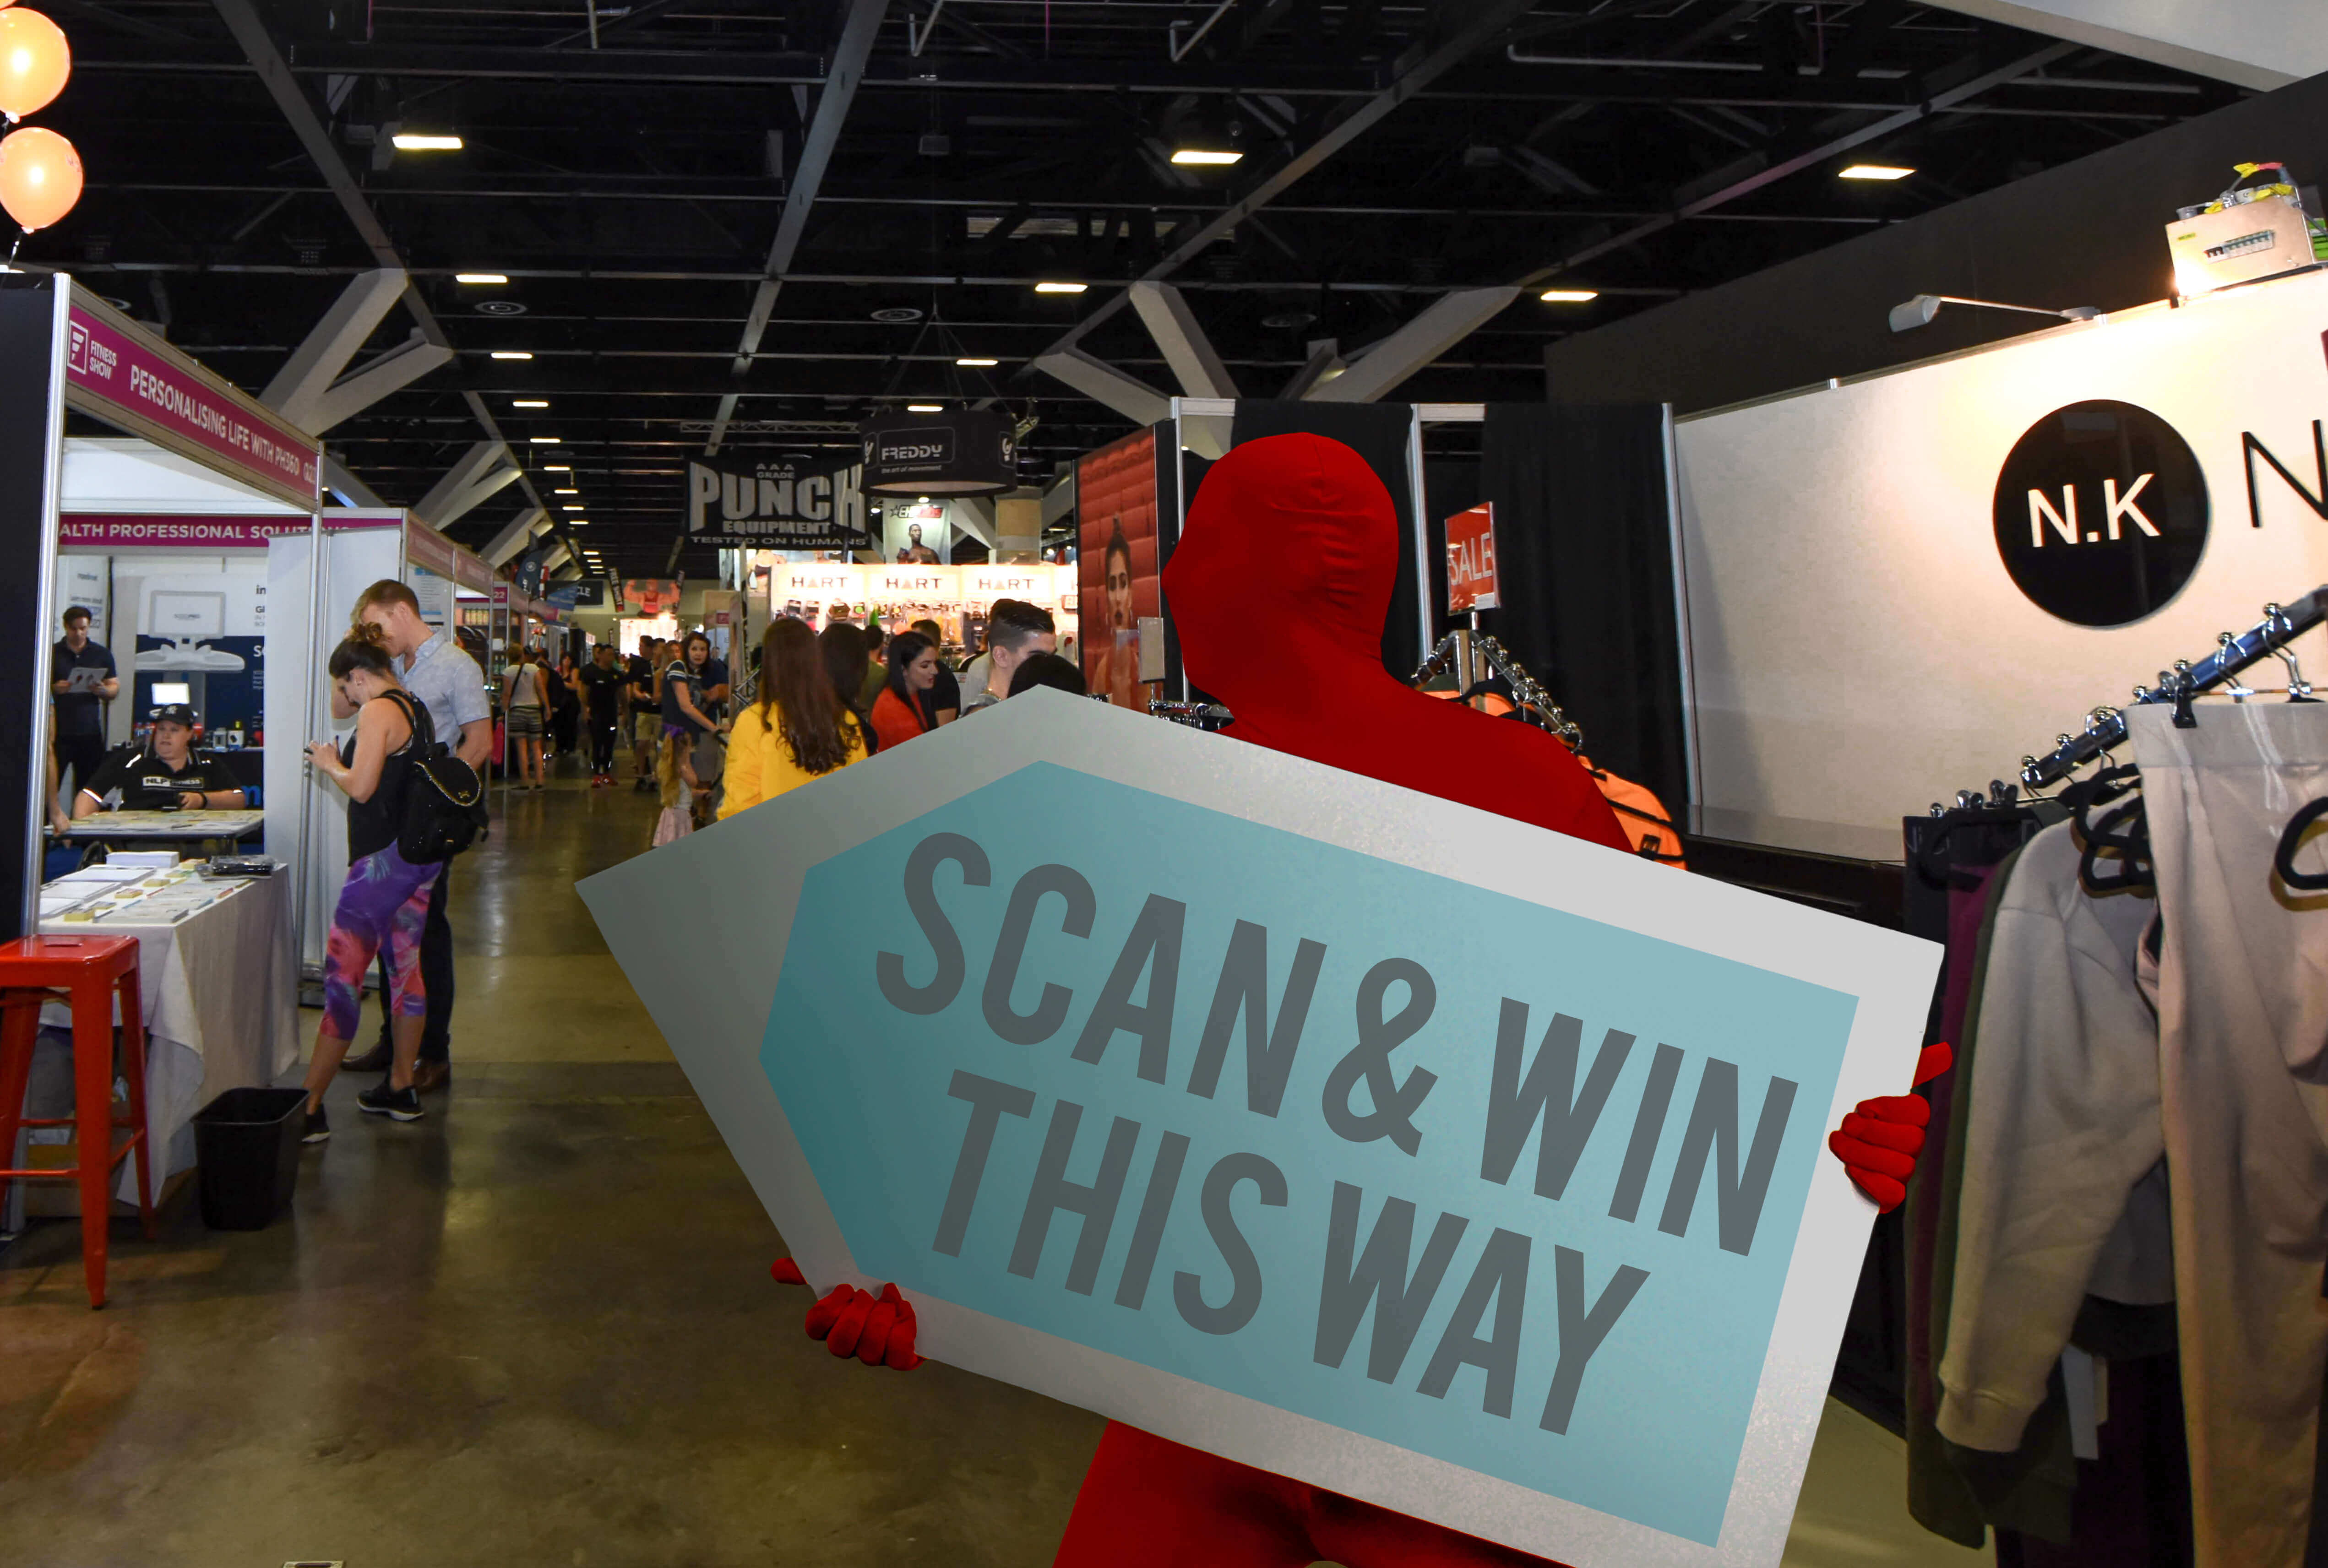 A sign waver holding a promotional sign while wearing a red morph suit during a trade show event